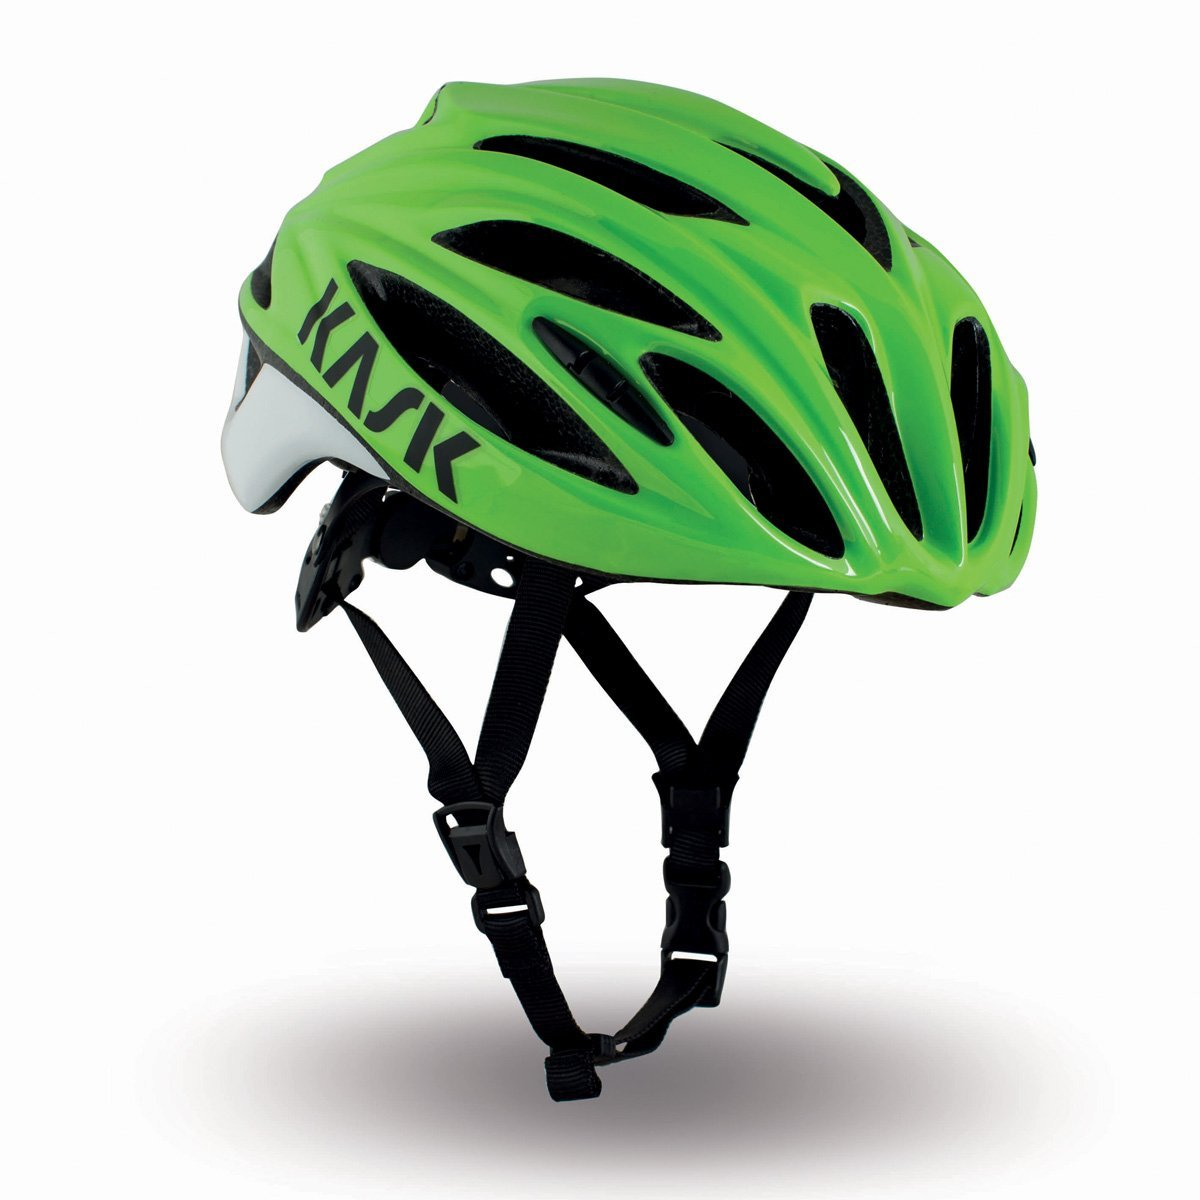 Green Kask Bicycle Helmets